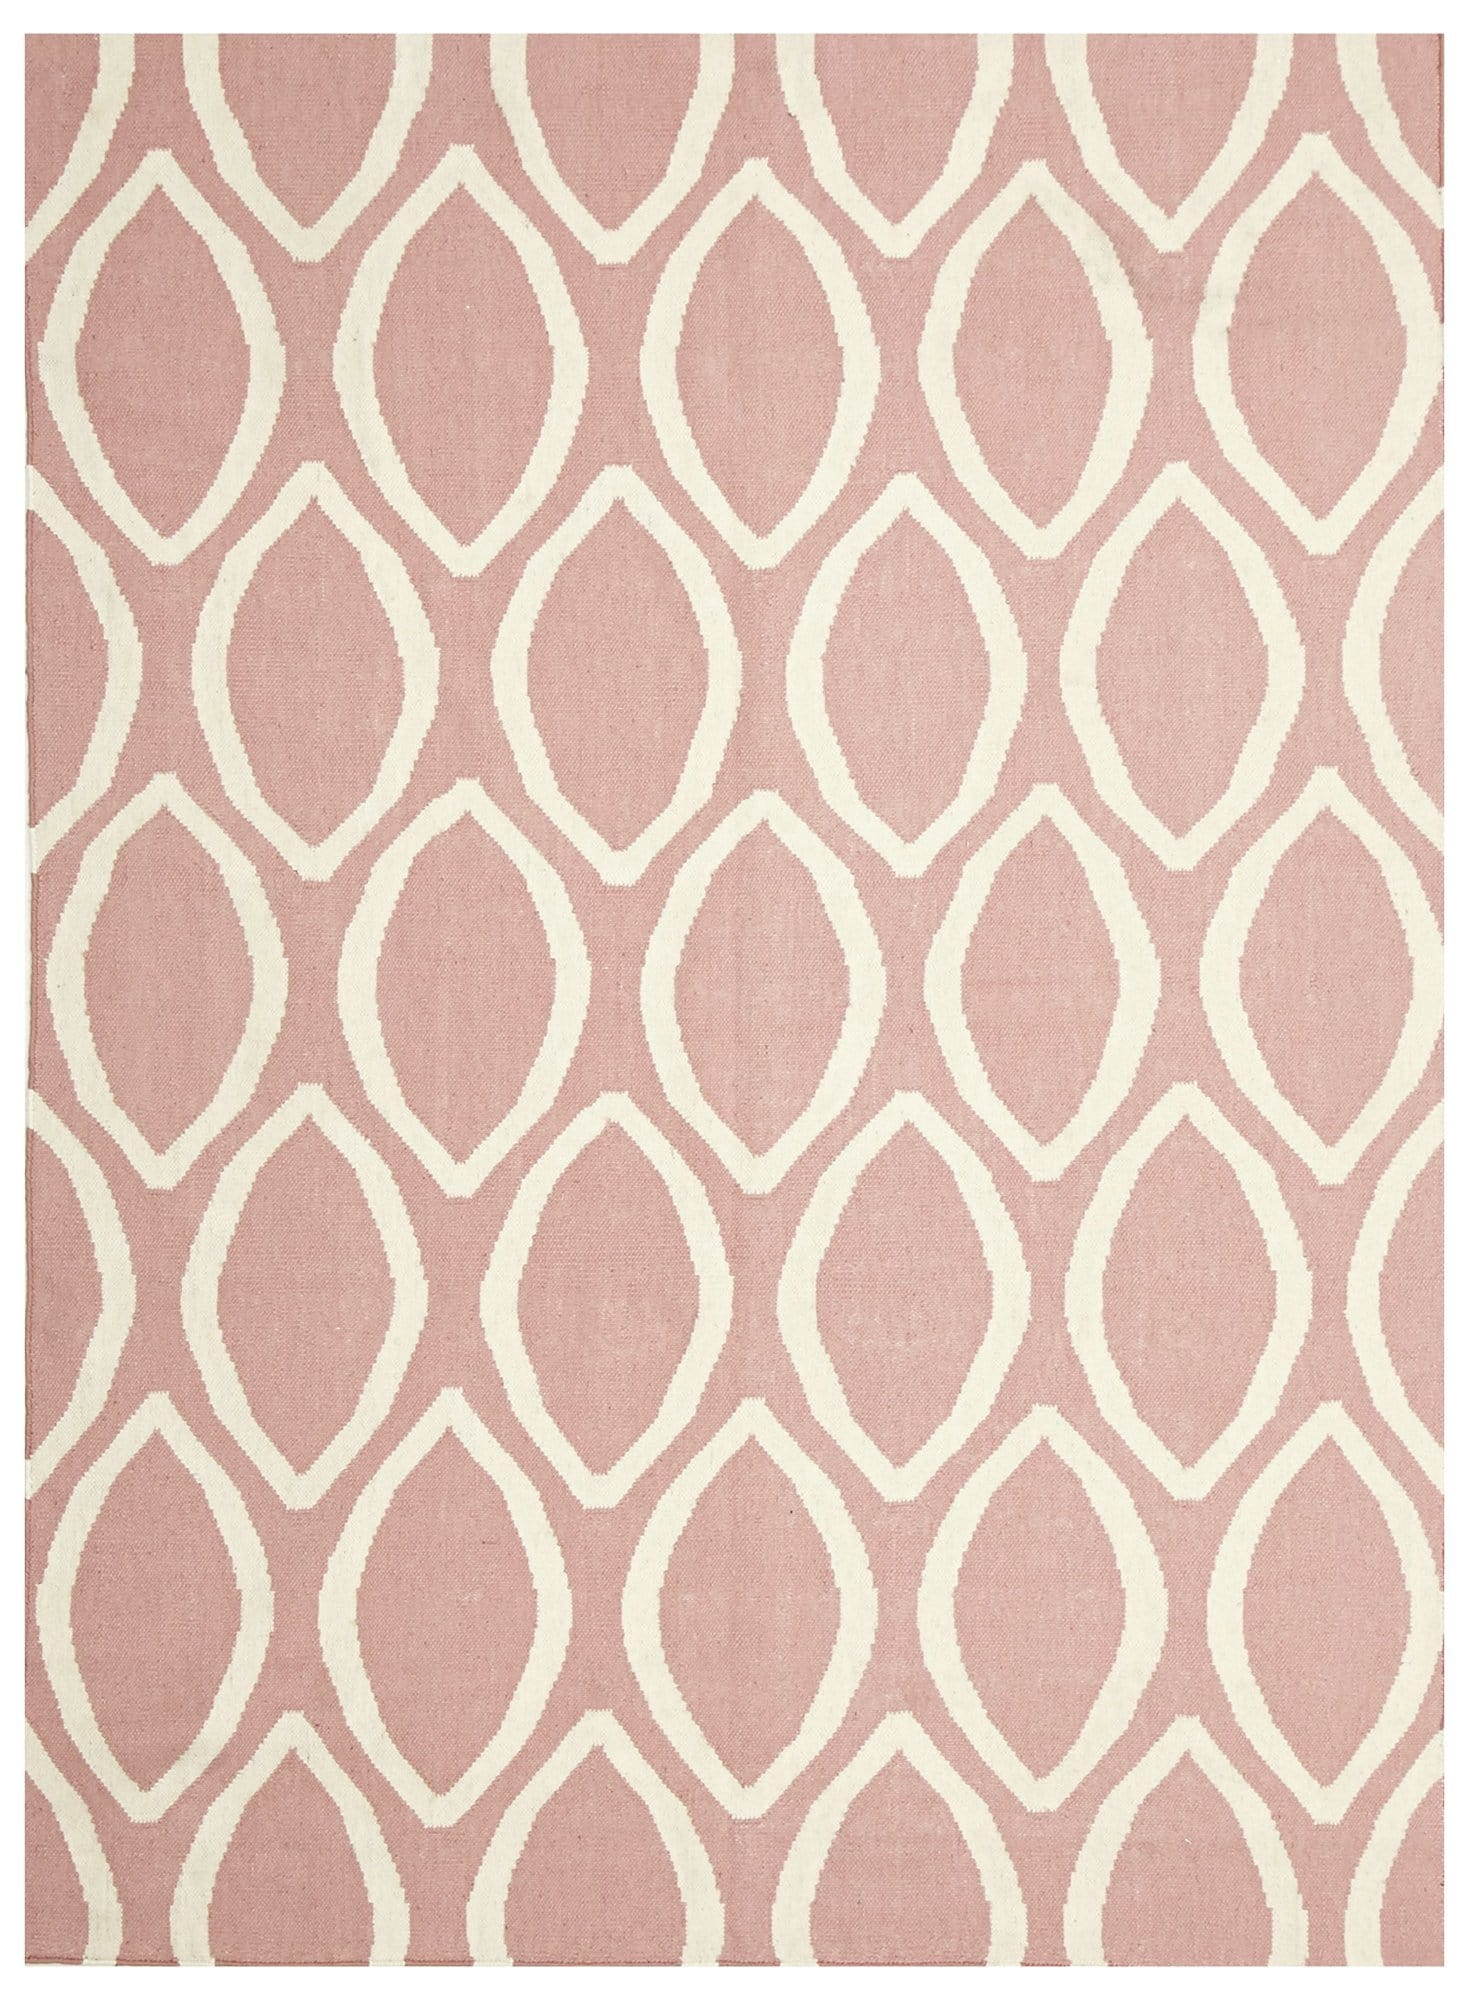 chevron by moghul indian dhurrie dhurrrie suza rug rugs